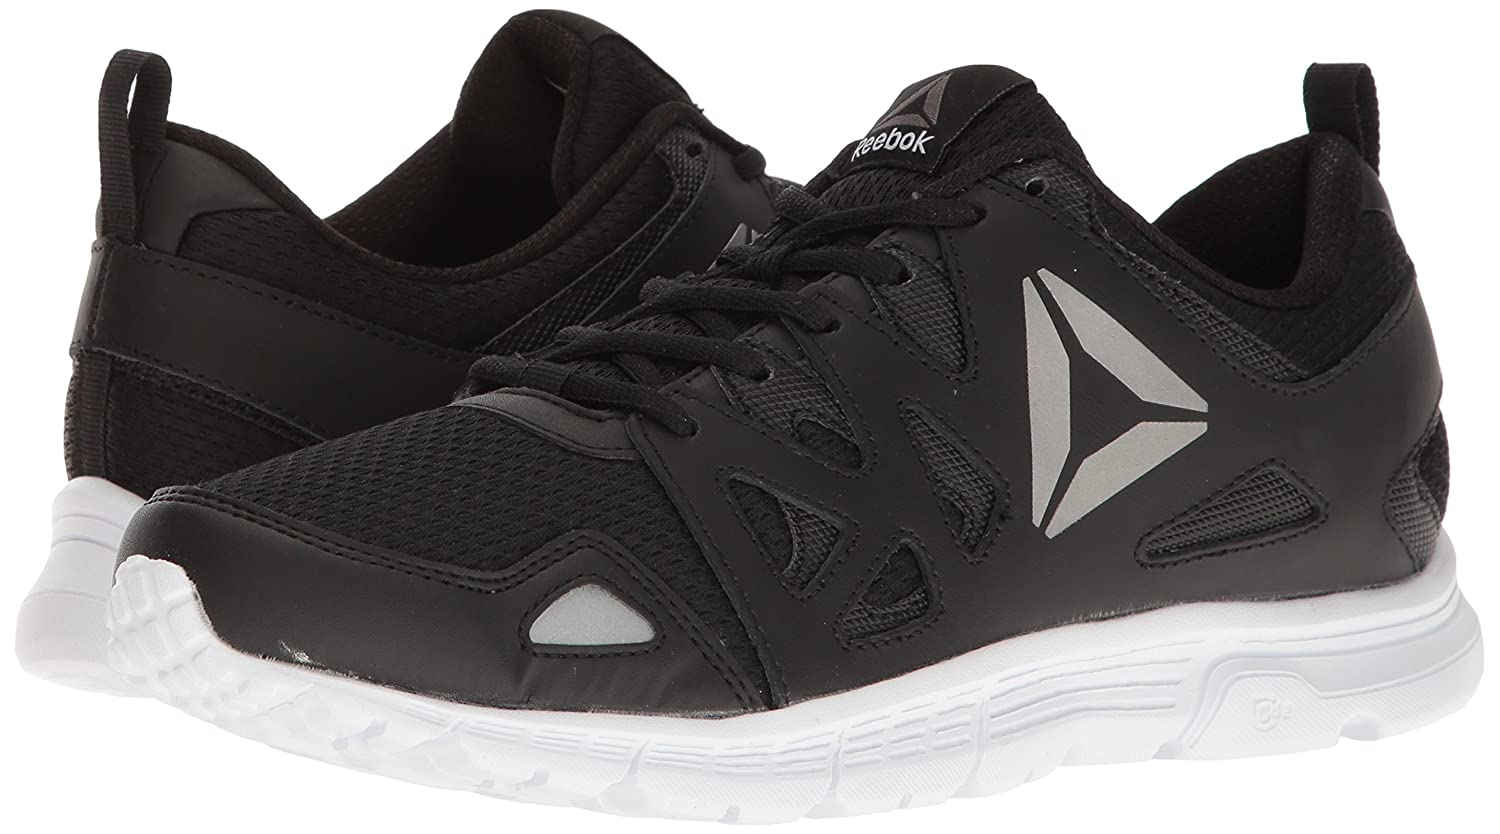 63c0761fa Amazon.com | Reebok Men's Run Supreme 3.0 Mt Shoe | Road Running